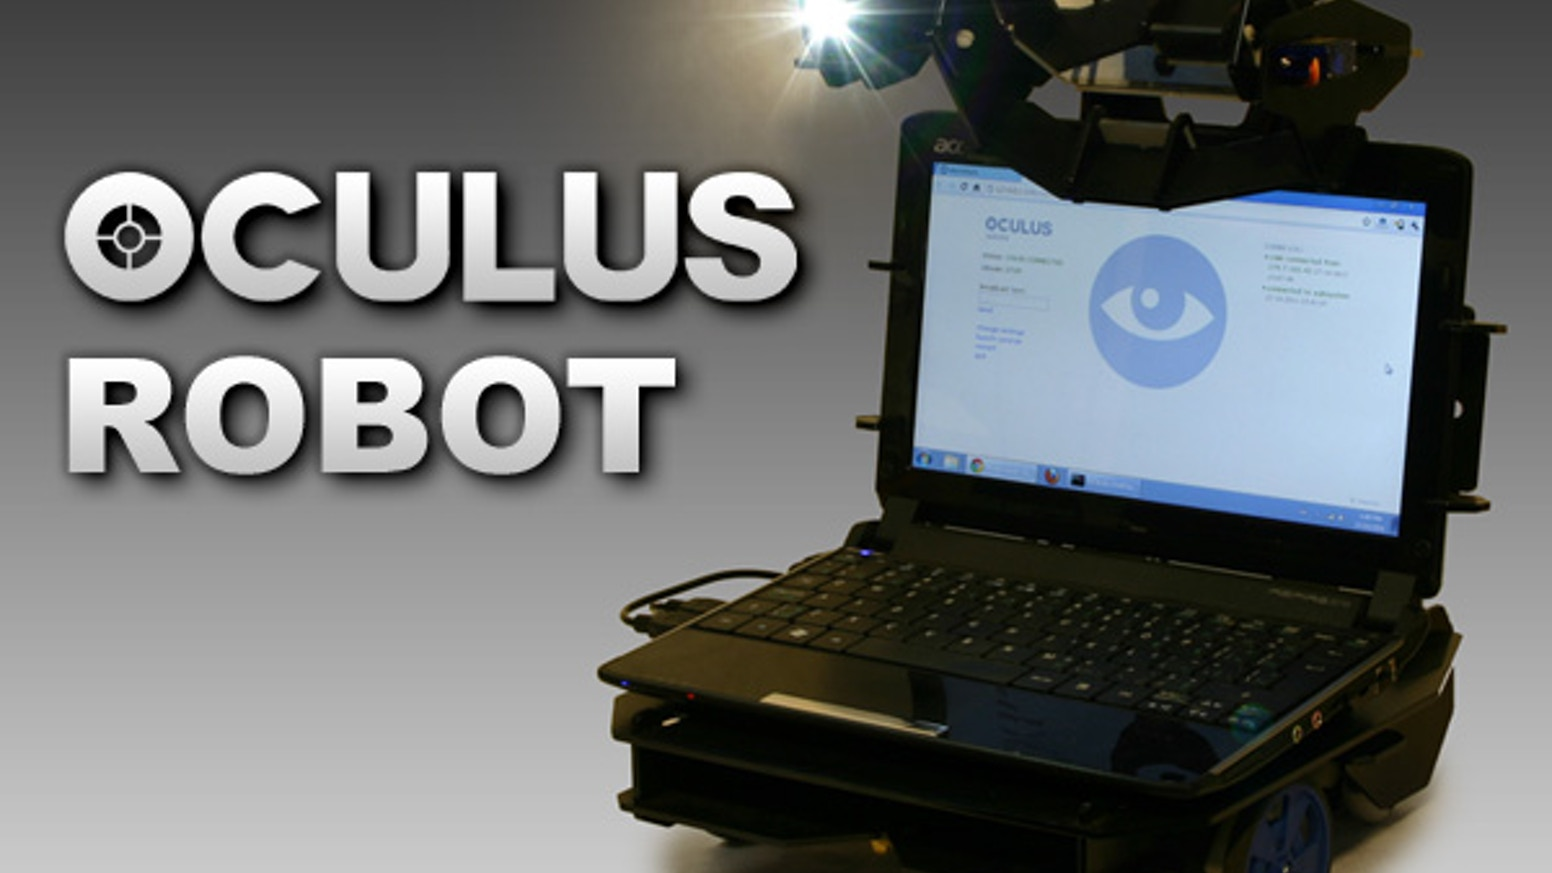 Oculus is a motorized frame and software kit that instantly converts a small laptop into a web controlled ROBOT